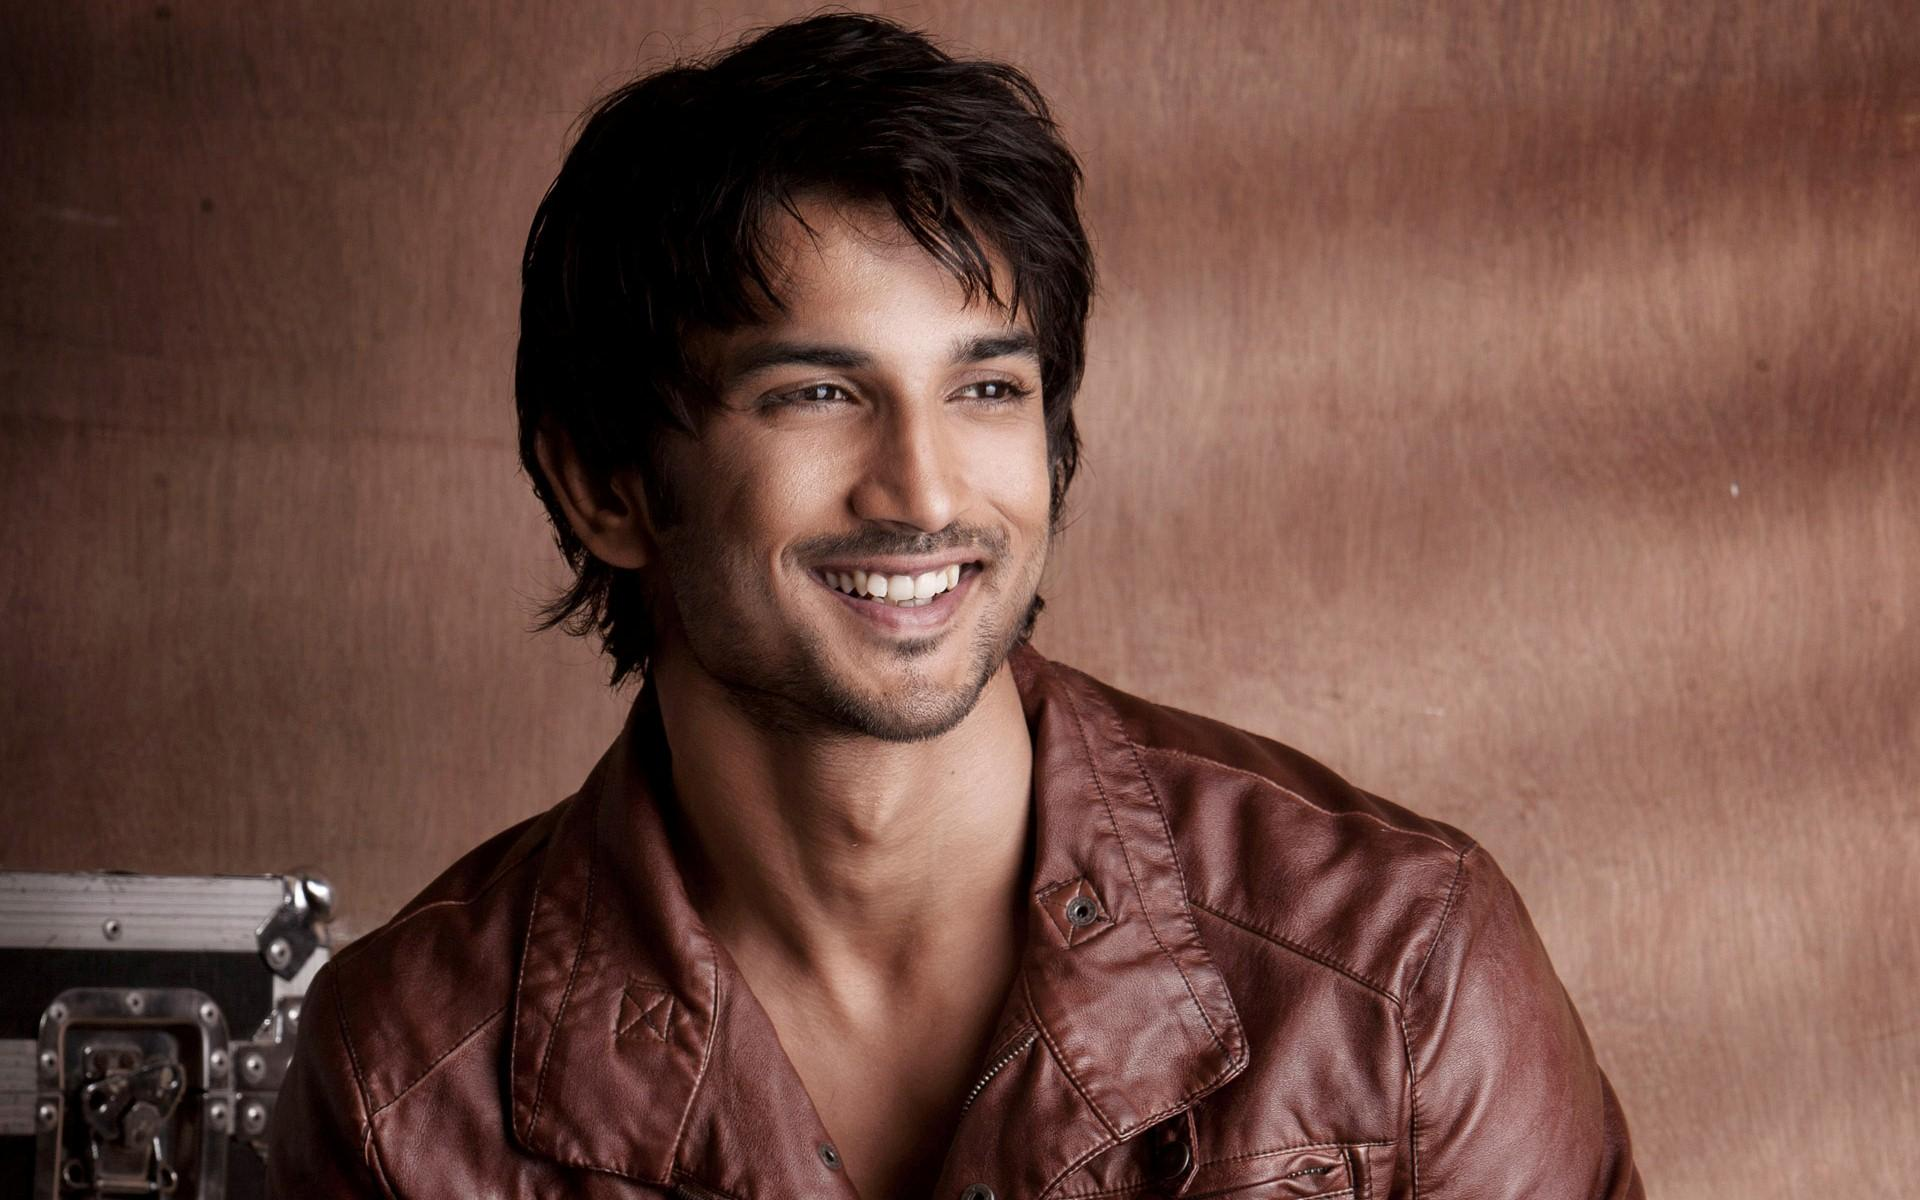 Sushant%2BSingh%2BRajput2 Sushant Singh Rajput Bio, wiki, Family, Relationship, Net Worth, Car Collection, Best Photos, Death News, Movies and more 2021